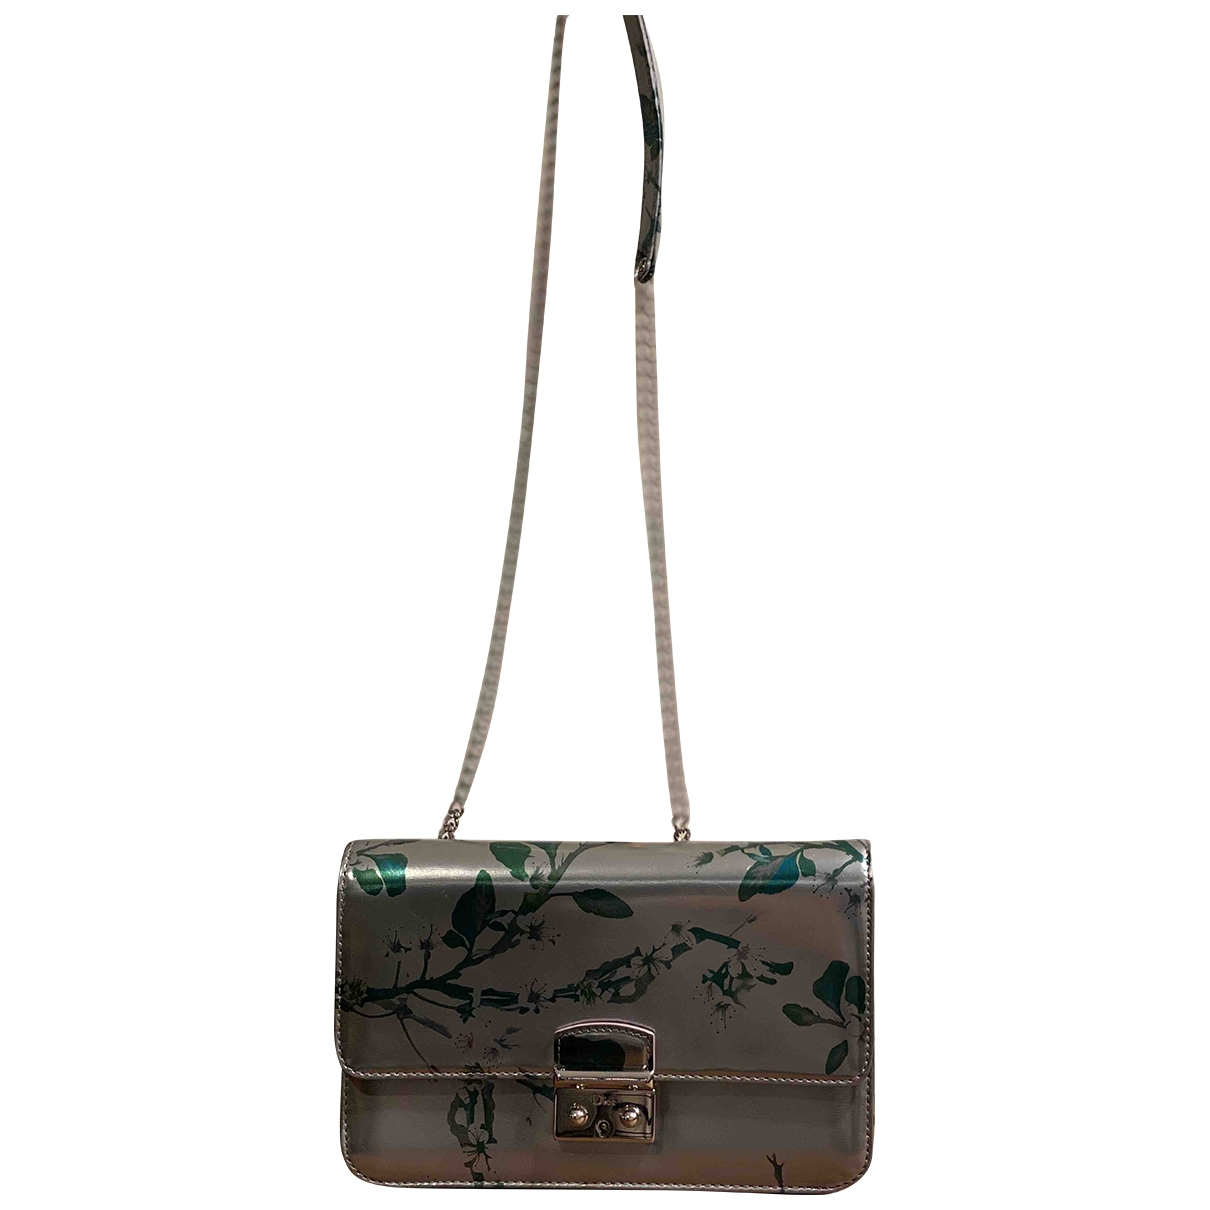 Dior Miss Dior Silver Patent leather handbag for Women \N